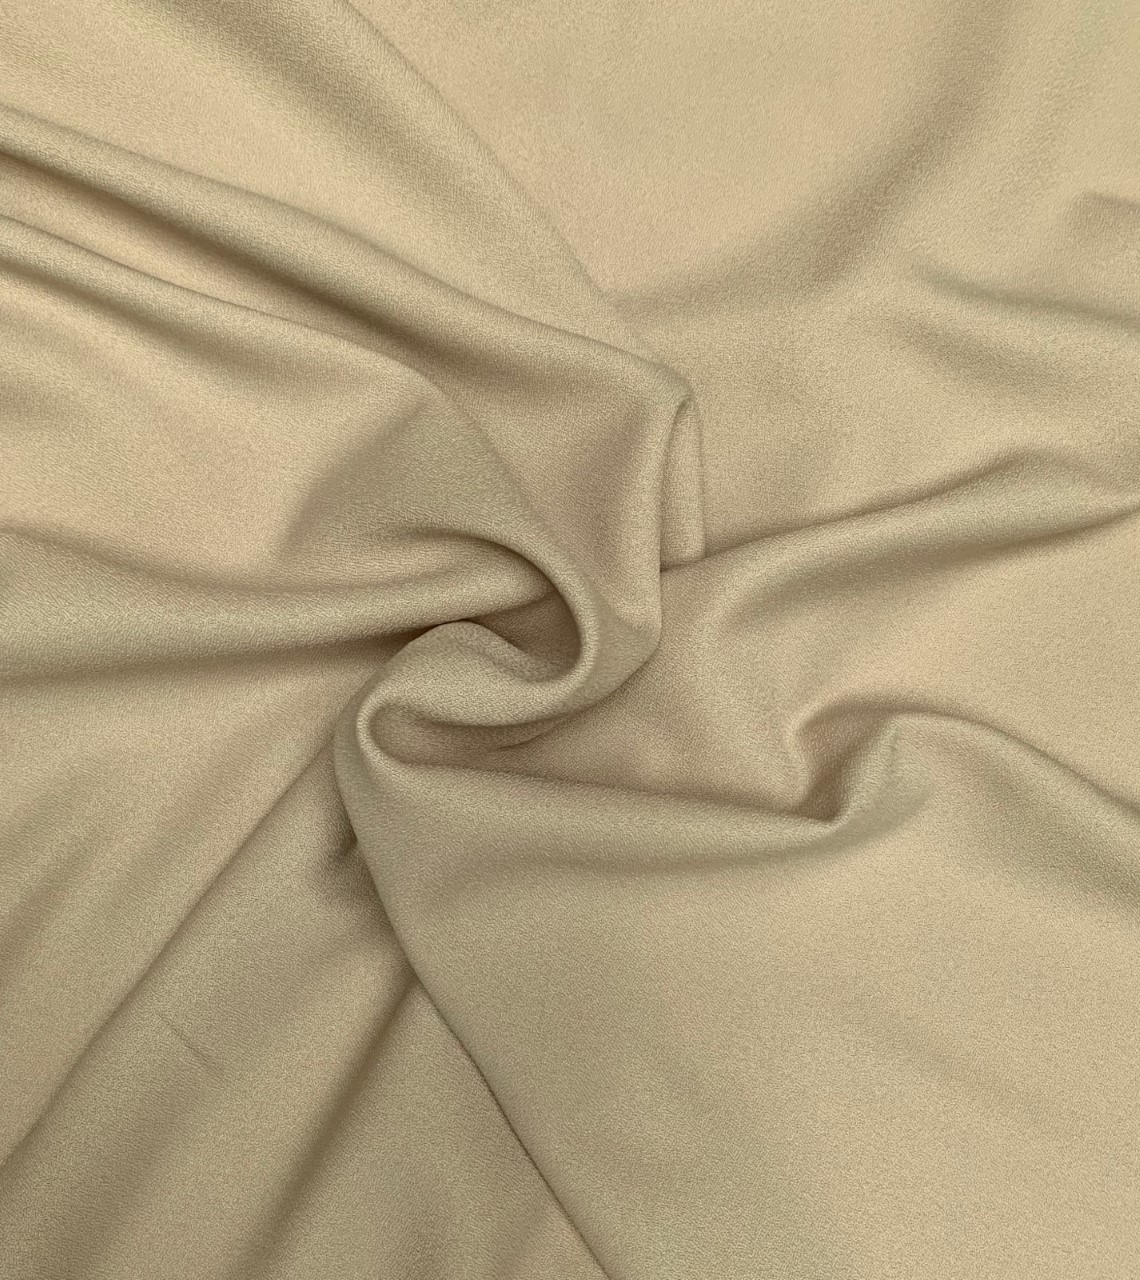 "Khaki Crepe Fabric 60"" By the yard (100% polyester)"